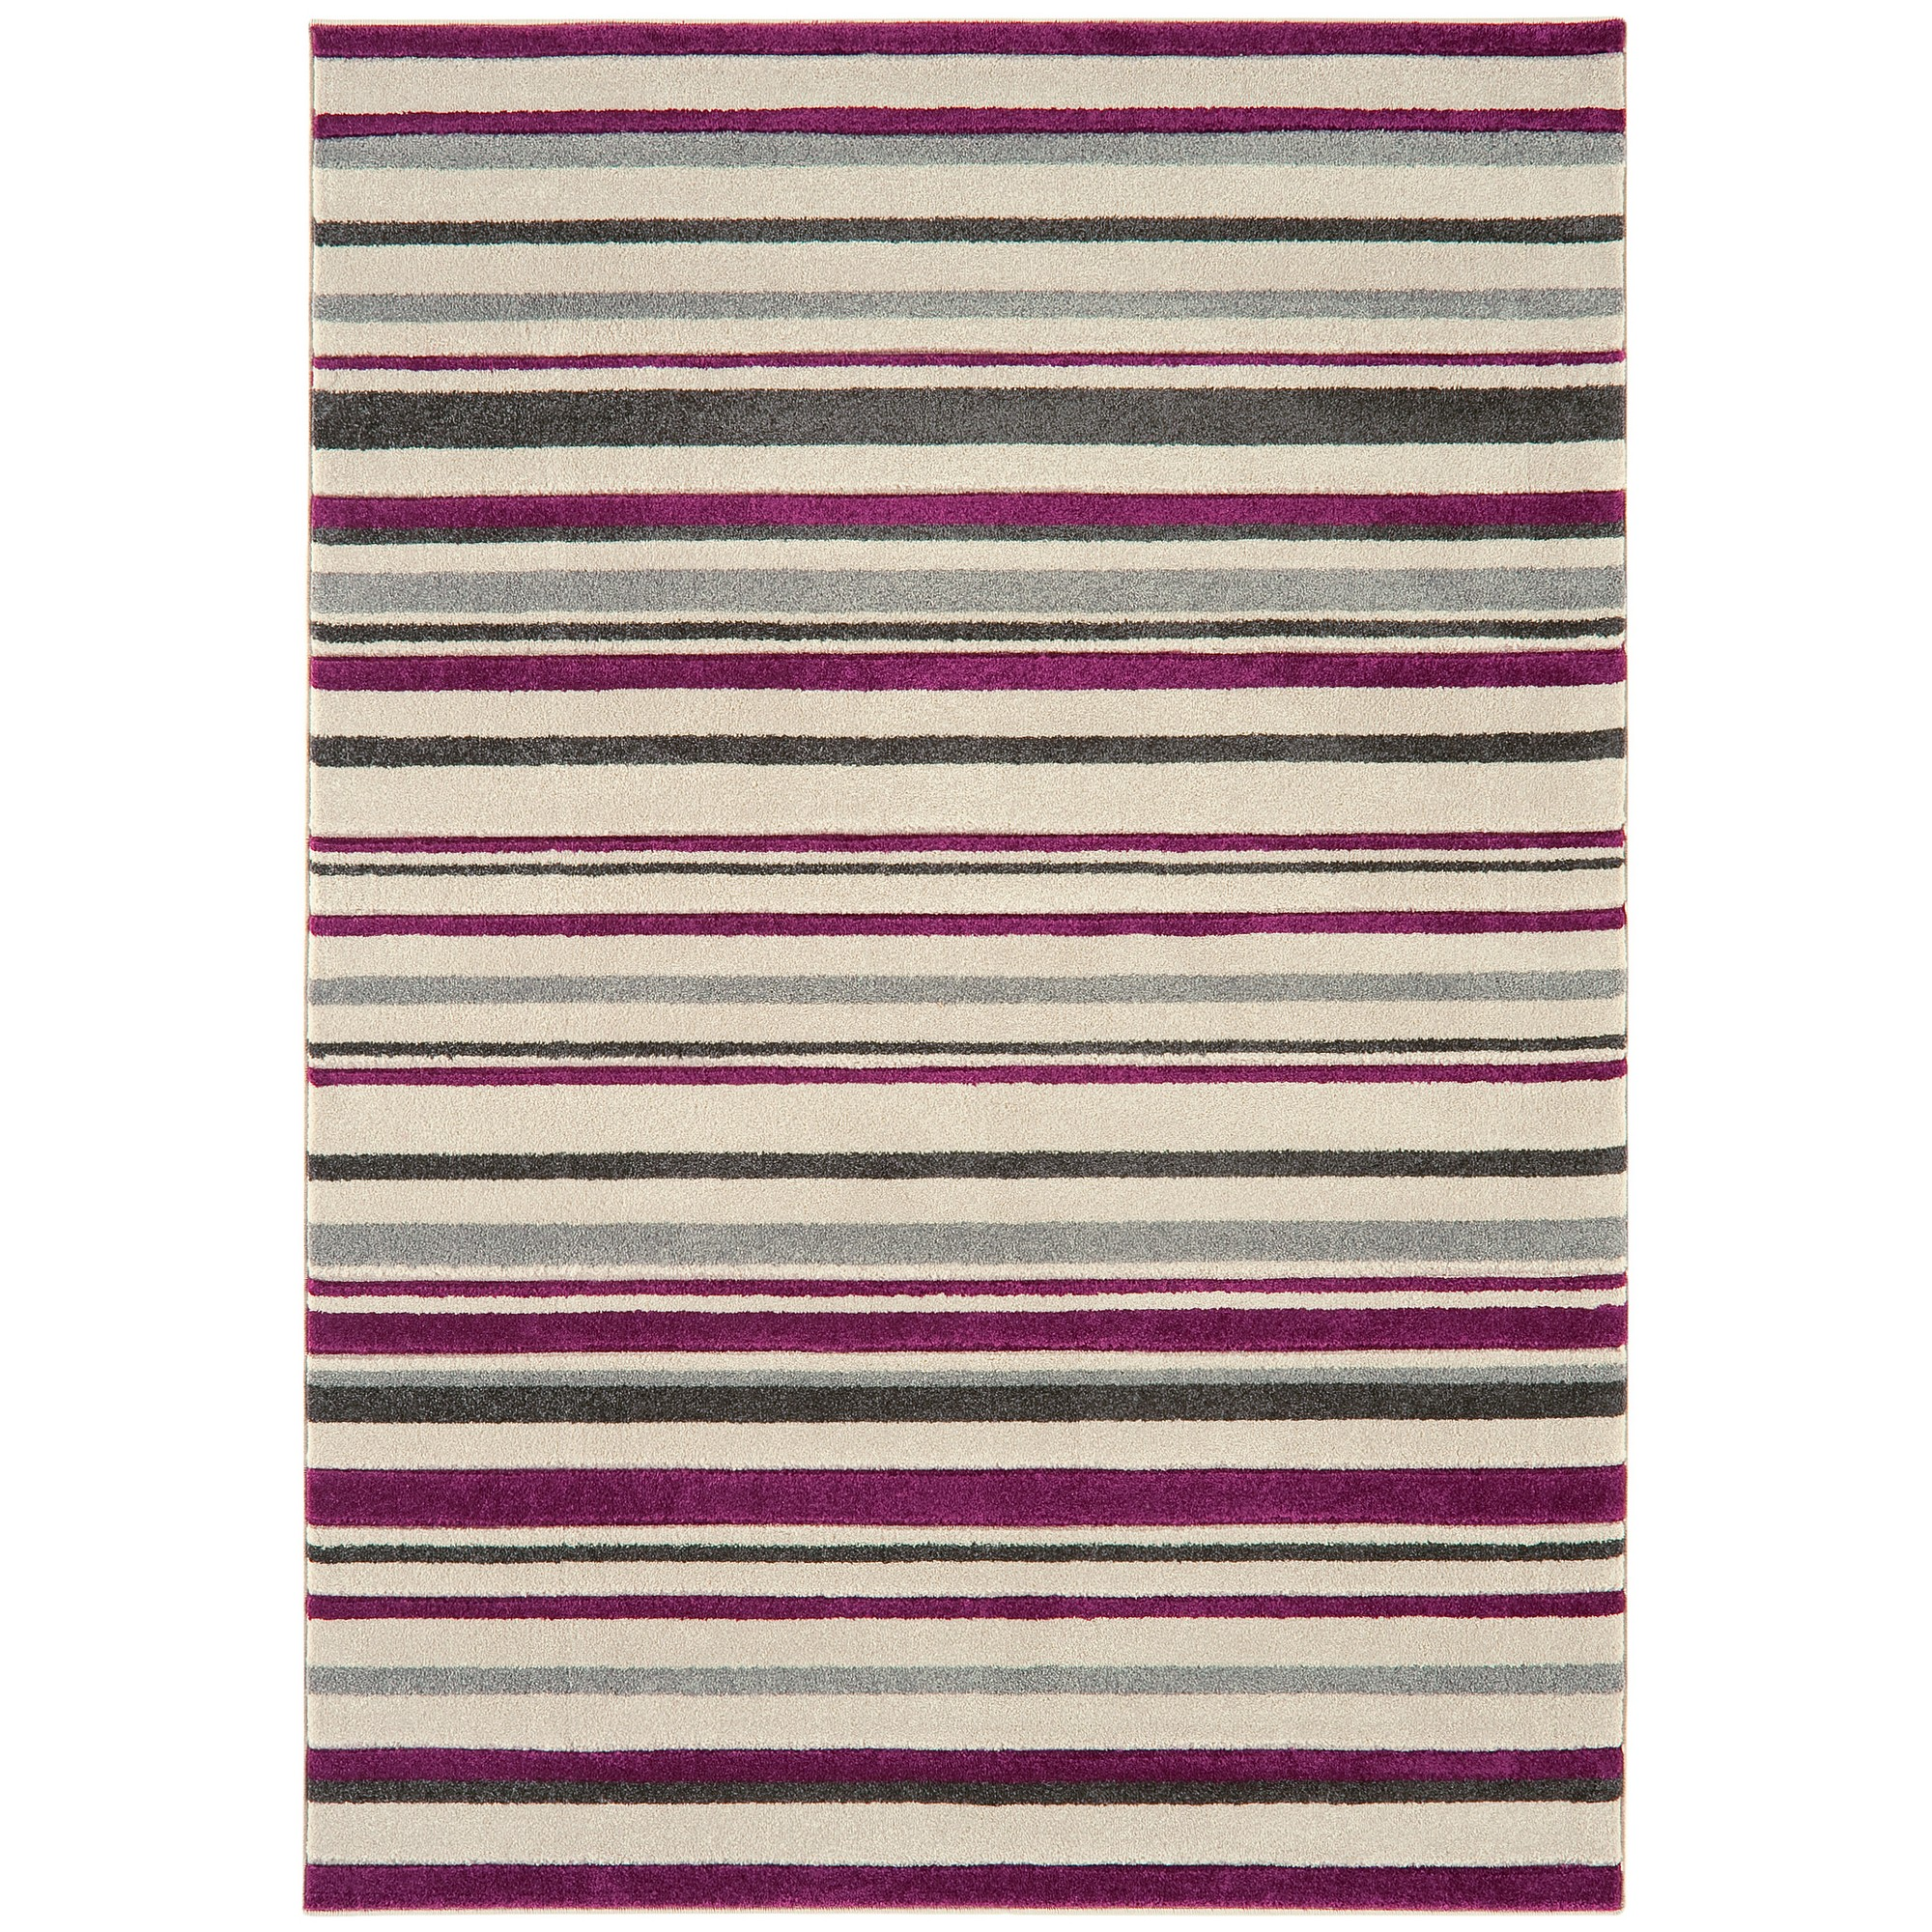 Vogue Stripes Rugs VG21 in Beige and Purple